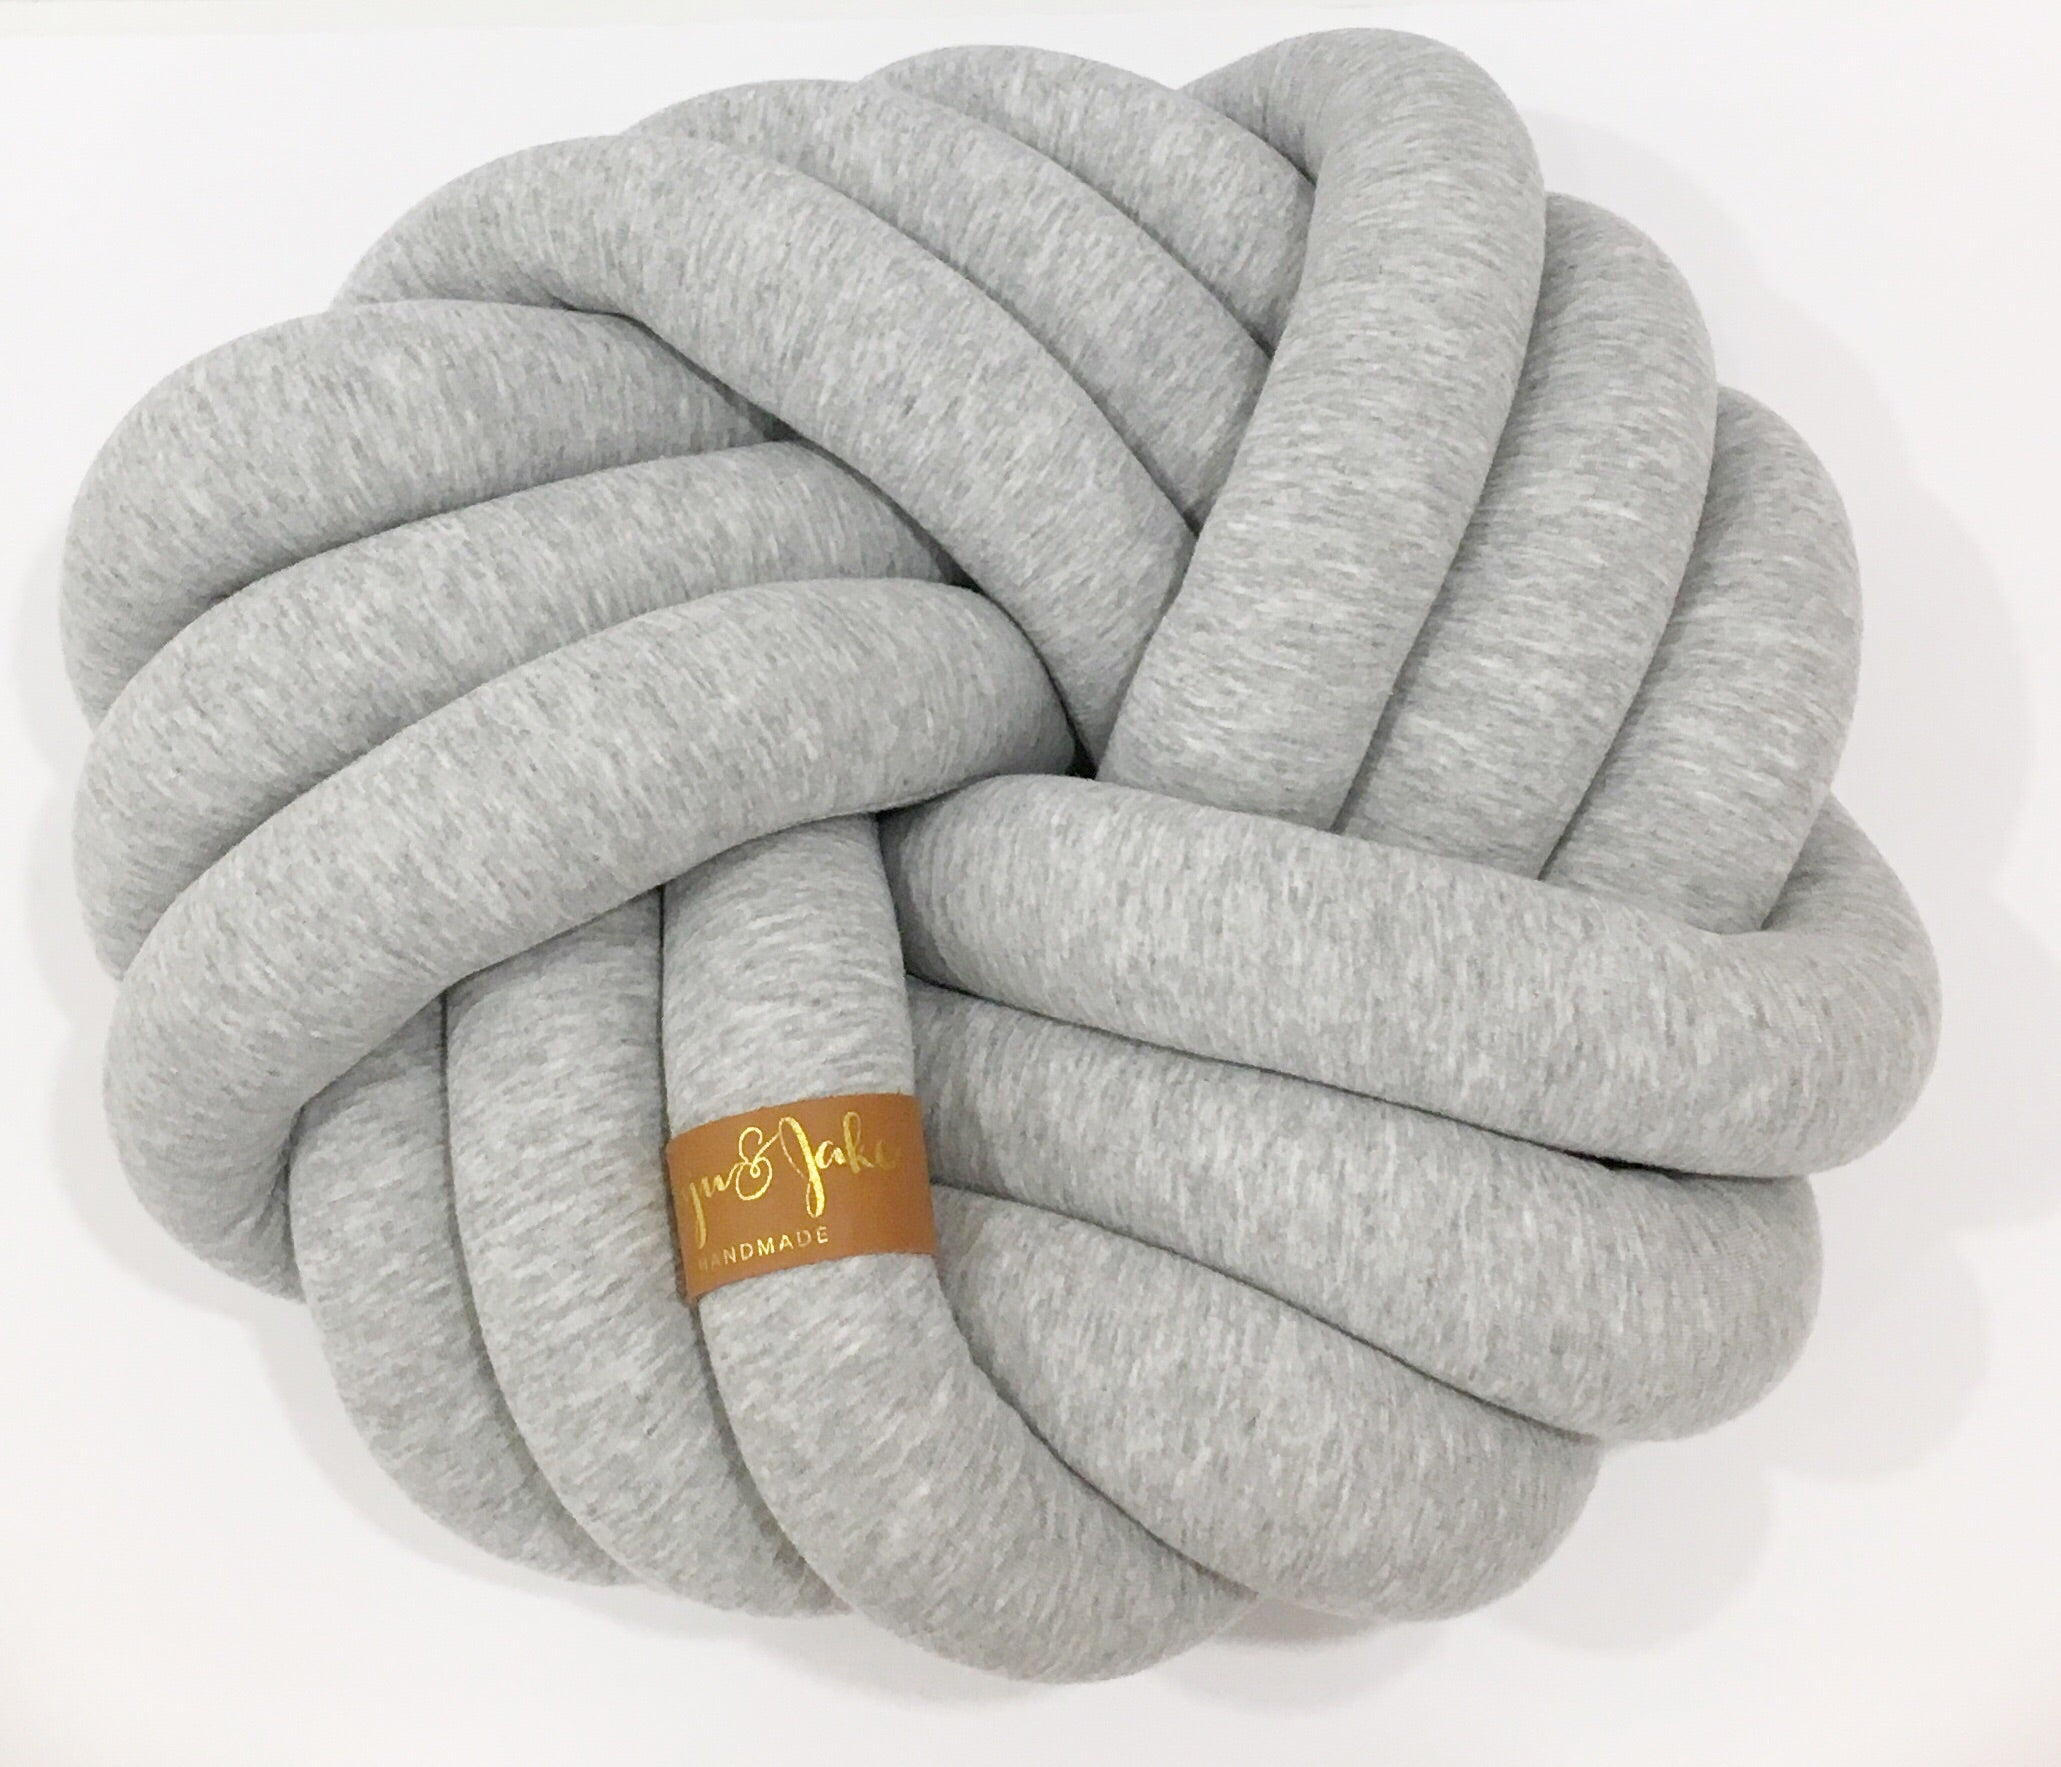 Light Grey | Kids Floor Knot Cushion / Floor Pillow - See more Kids Knot Pillows & Cushions at JujuAndJake.com